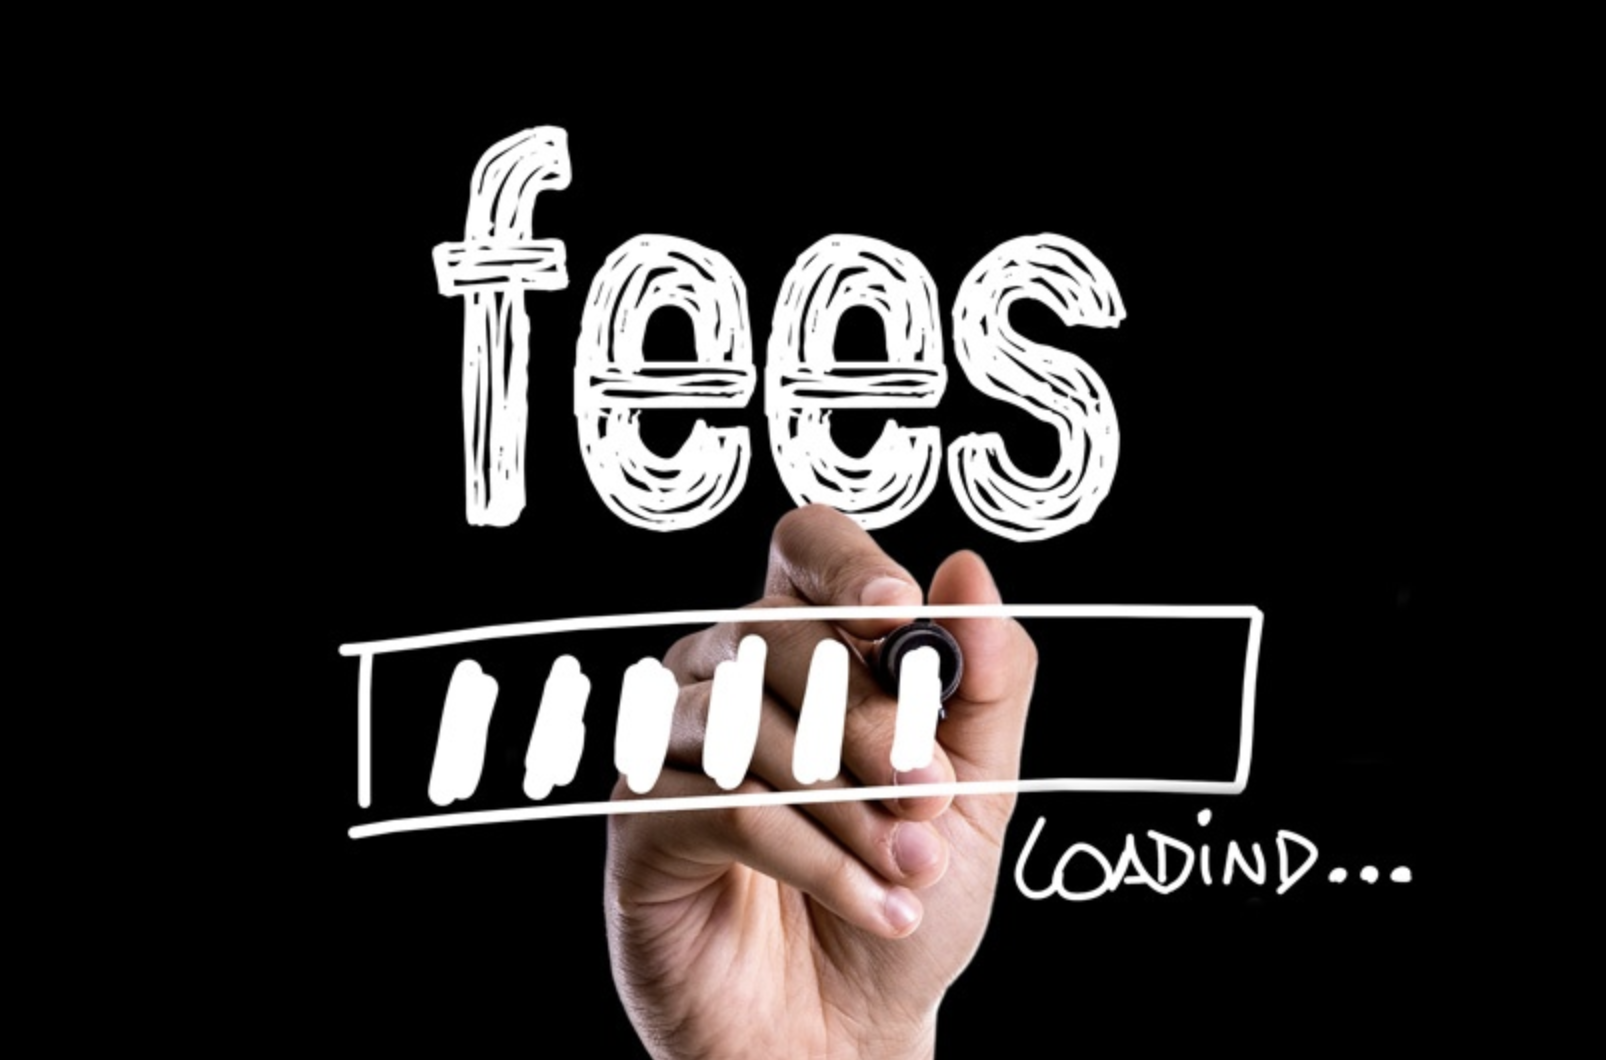 Rethinking advisory fees means figuring out value